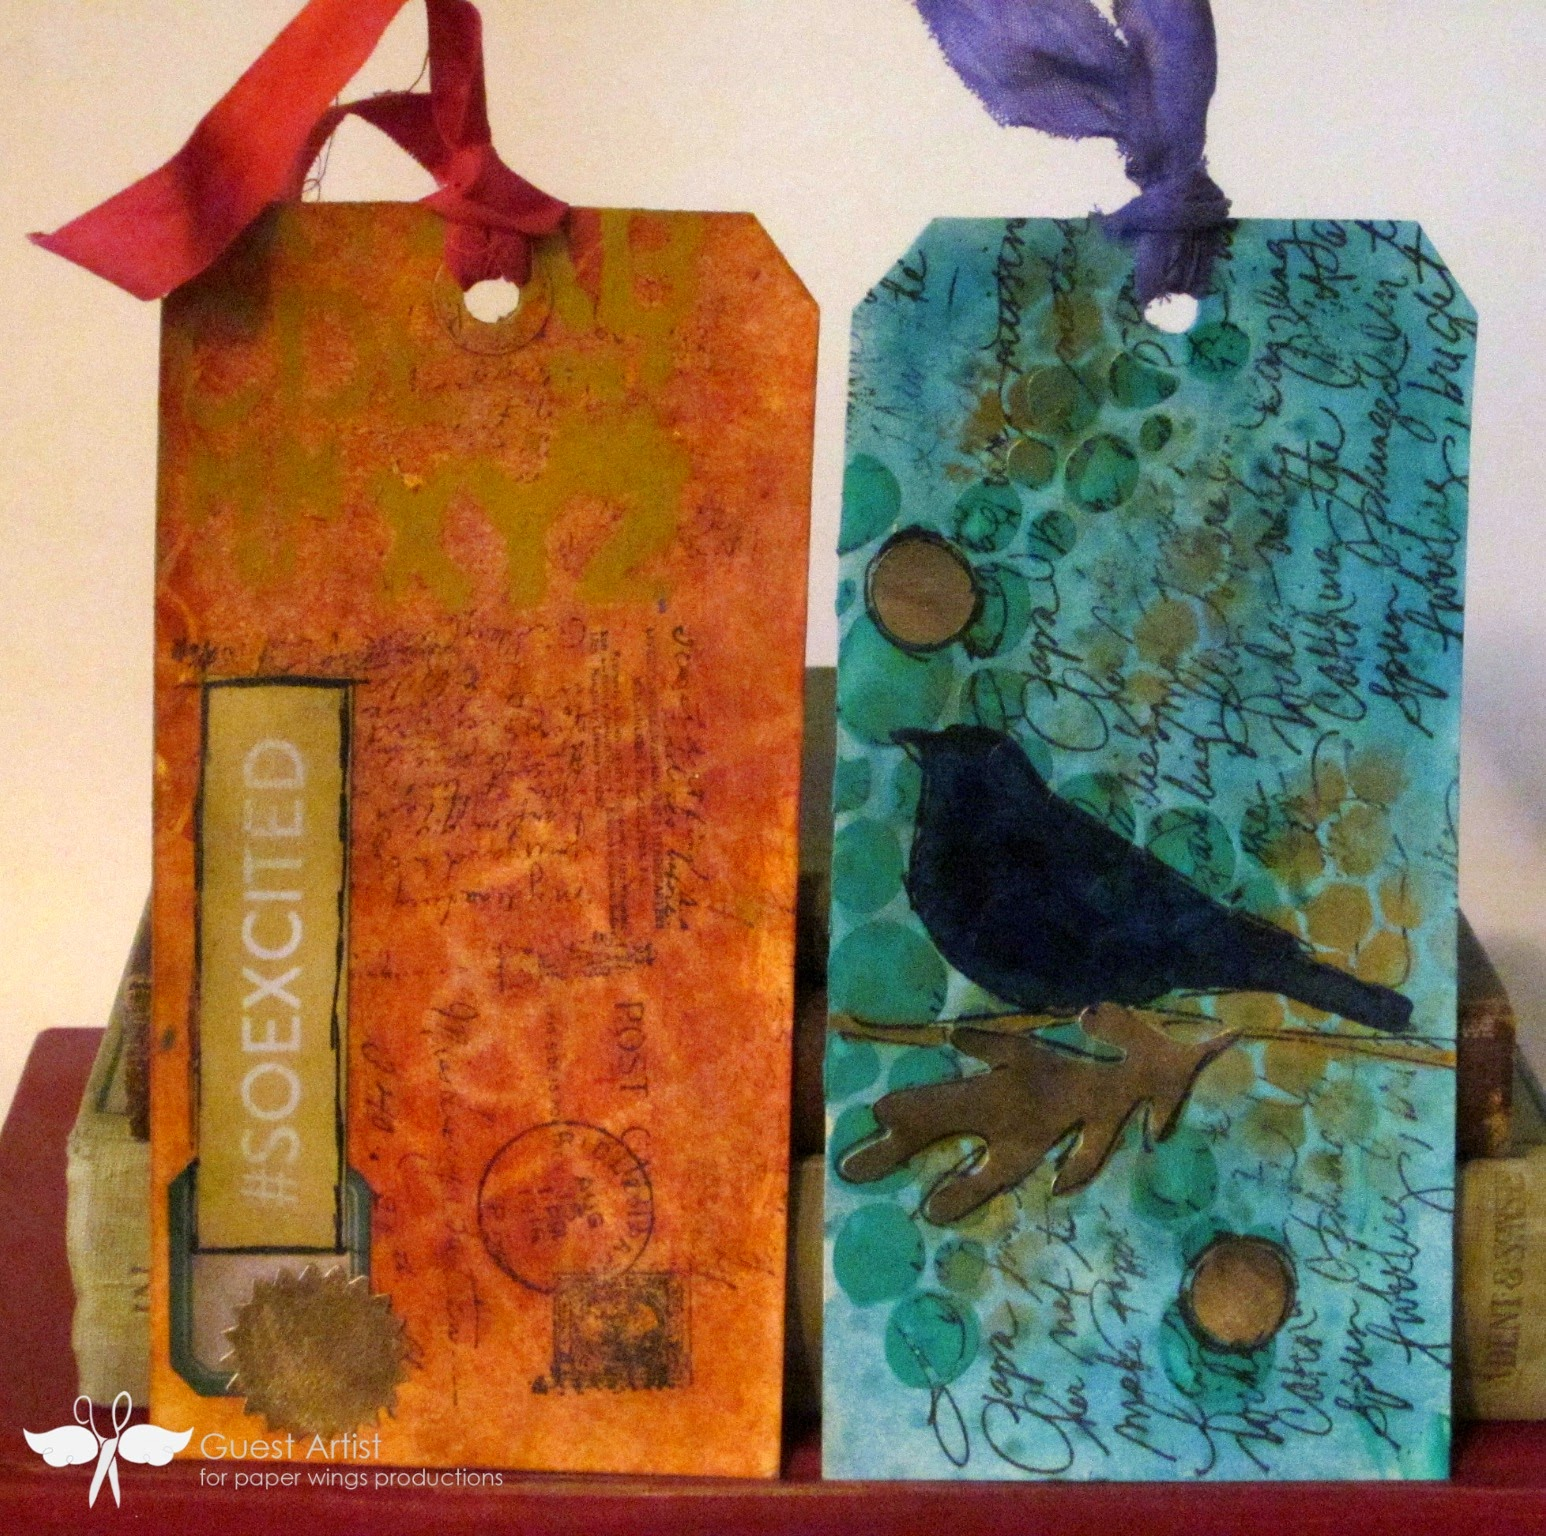 PWP feature friday writing background stamps, mixed media tags created by www.serendipitystudiobycw.blogspot.com